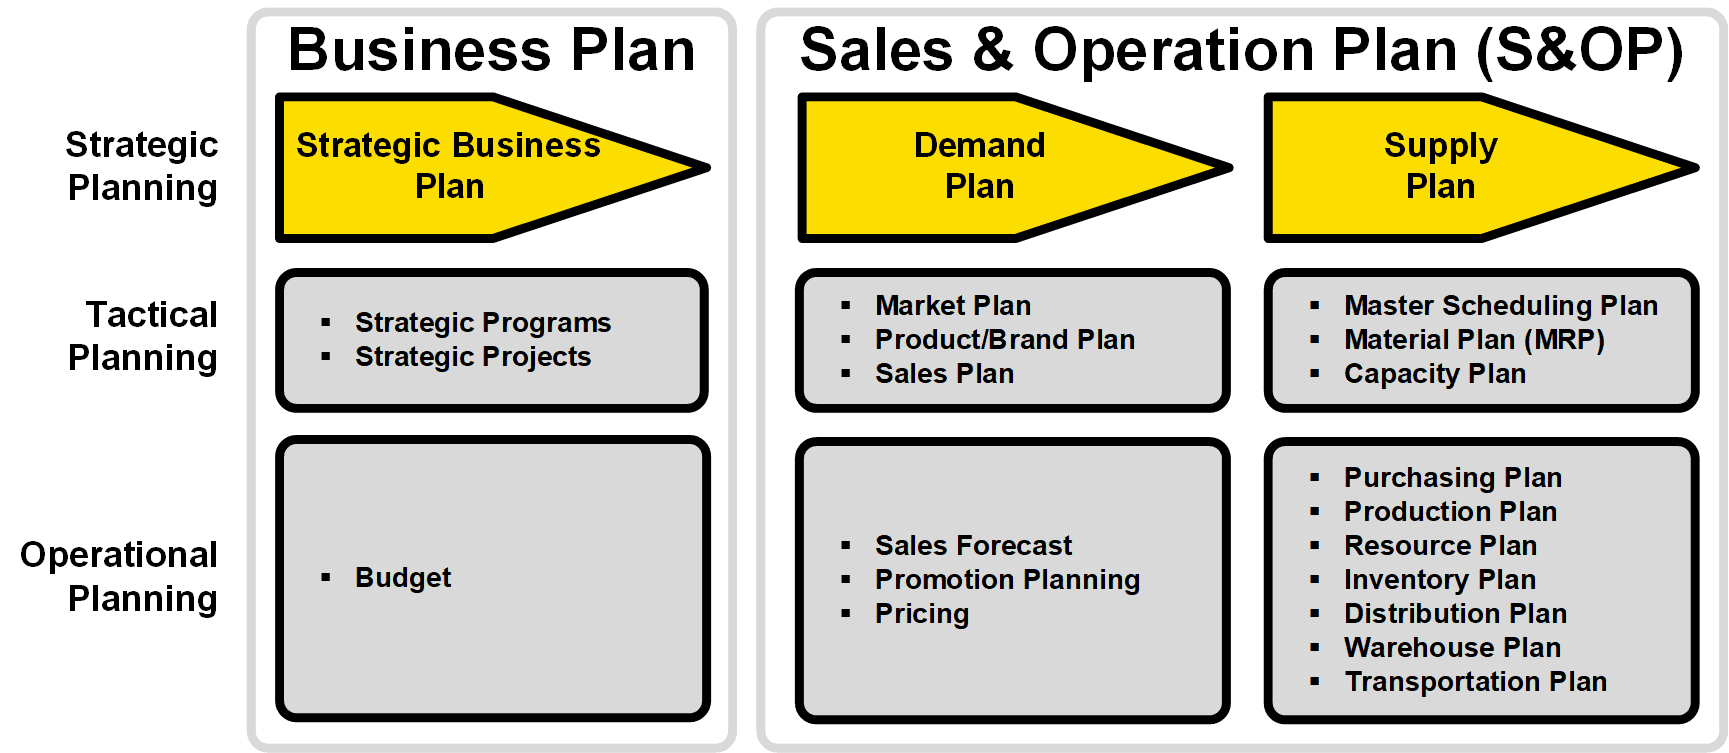 sales and operations planning s op adexas planning solution